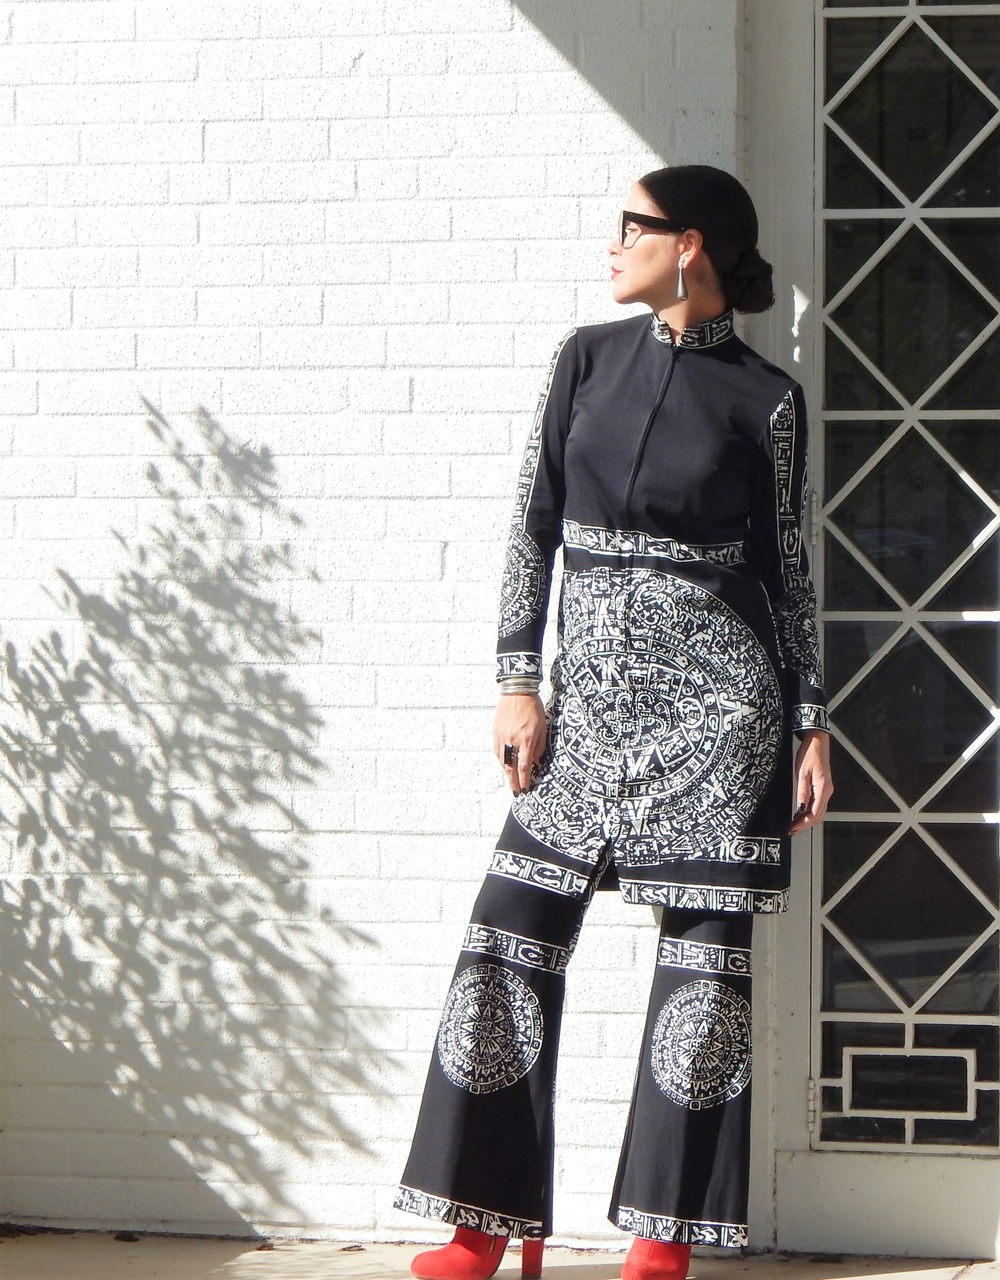 Image credit: Idallia Alicea  THE Aztec tunic. #covet